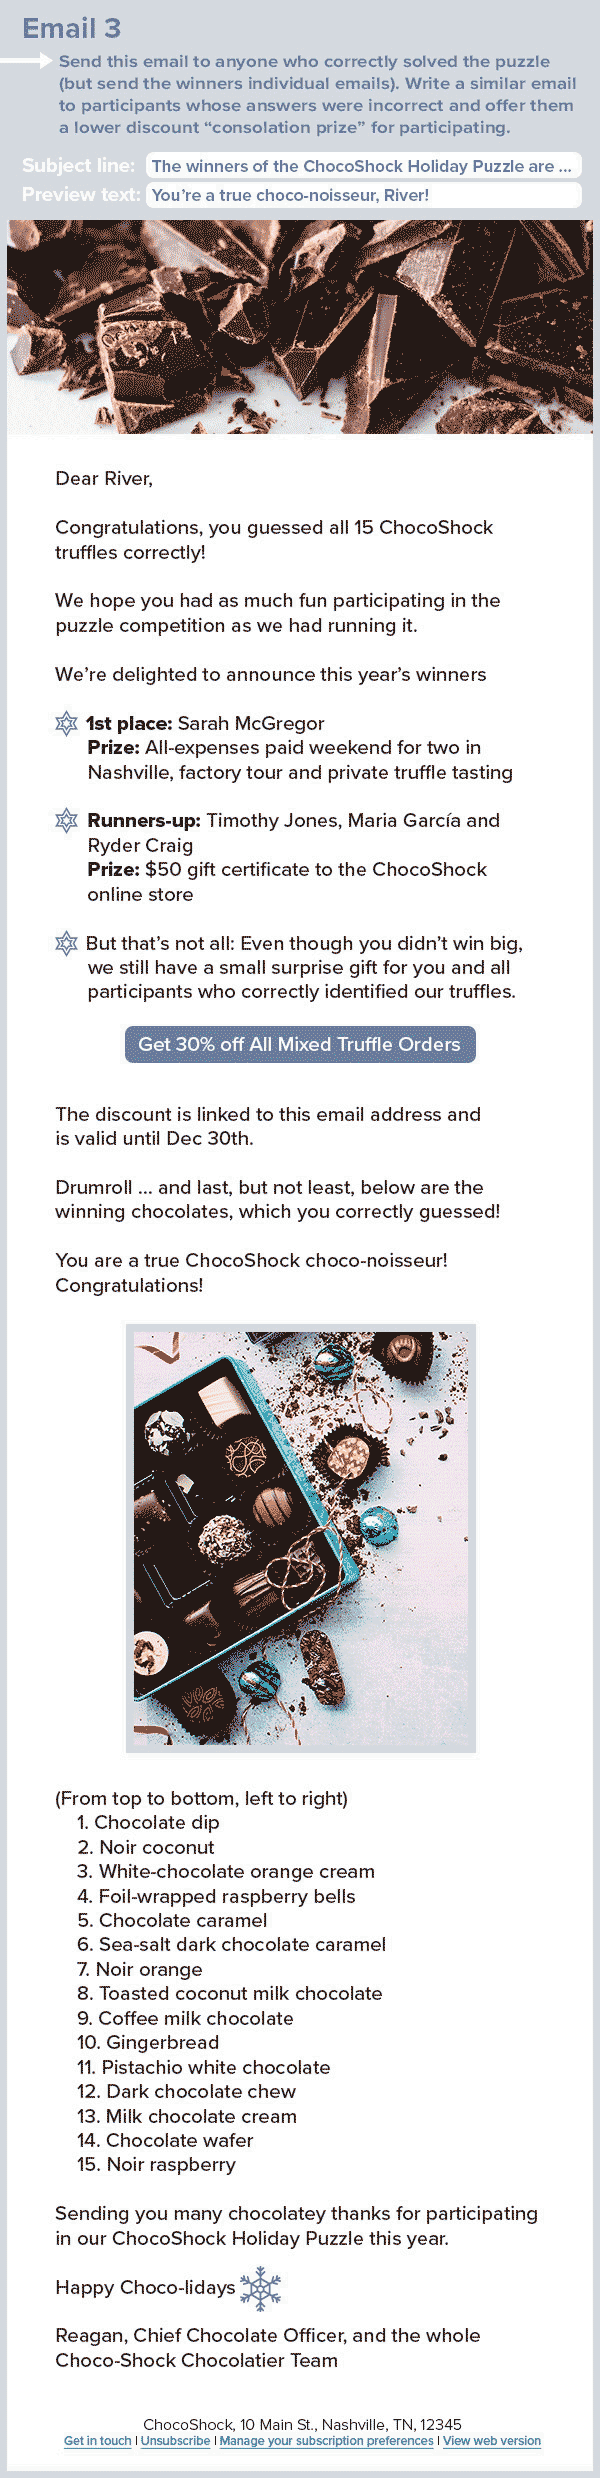 "A silver, blue and white holiday email with a close-up image of a chocolate and the following text: Email 3 Send this email to anyone who correctly solved the puzzle (but send the winners individual emails). Write a similar email to participants whose answers were incorrect and offer them a lower discount ""consolation prize"" for participating. Subject line: The winners of the ChocoShock Holiday Puzzle are ... Preview text: You're a true choco-noisseur, River! Dear River, Congratulations, you guessed all 15 ChocoShock truffles correctly! We hope you had as much fun participating in the puzzle competition as we had running it. We're delighted to announce this year's winners 🍬 1st place: Sarah McGregor Prize: All-expenses paid weekend for two in Nashville, factory tour and private truffle tasting 🍬 Runners-up: Timothy Jones, Maria García and Ryder Craig Prize: $50 gift certificate to the ChocoShock online store 🍬 But that's not all: Even though you didn't win big, we still have a small surprise gift for you and all participants who correctly identified our truffles. Get 30% off All Mixed Truffle Orders The discount is linked to this email address and is valid until Dec 30th. Drumroll … and last, but not least, below are the winning chocolates, which you correctly guessed! You are a true ChocoShock choco-noisseur! Congratulations! (From top to bottom, left to right) Chocolate dip Noir coconut White-chocolate orange cream Foil-wrapped raspberry bells Chocolate caramel Sea-salt dark chocolate caramel Noir orange Toasted coconut milk chocolate Coffee milk chocolate Gingerbread Pistachio white chocolate Dark chocolate chew Milk chocolate cream Chocolate wafer Noir raspberry Sending you many chocolatey thanks for participating in our ChocoShock Holiday Puzzle this year. Happy Choco-lidays❣ Reagan, Chief Chocolate Officer, and the whole Choco-Shock Chocolatier Team"